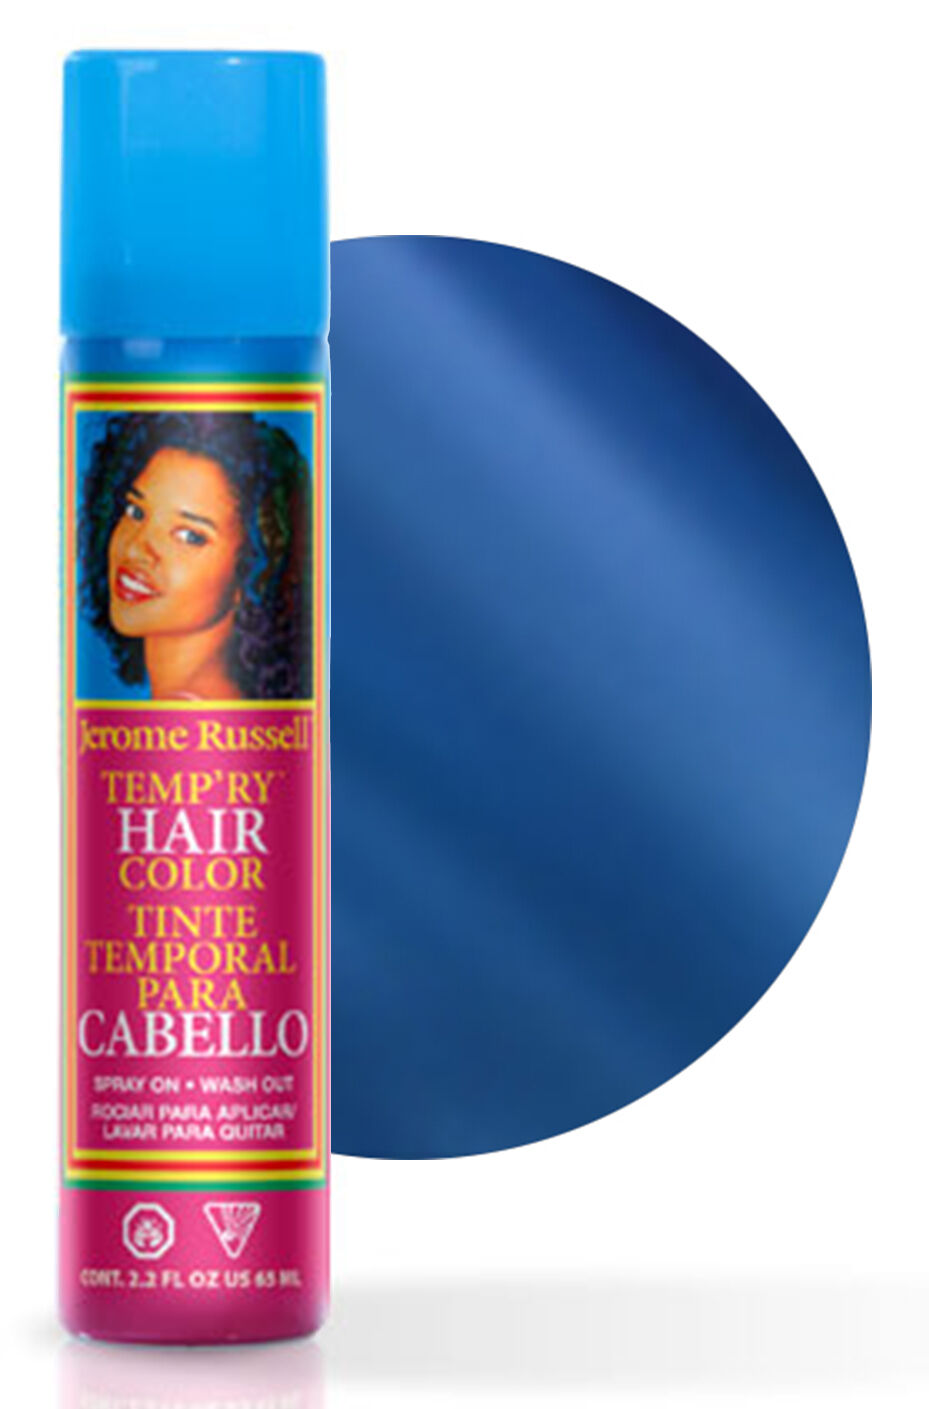 Jerome Russell Tempry Temporary Hair Color Spray 65ml Blue 596